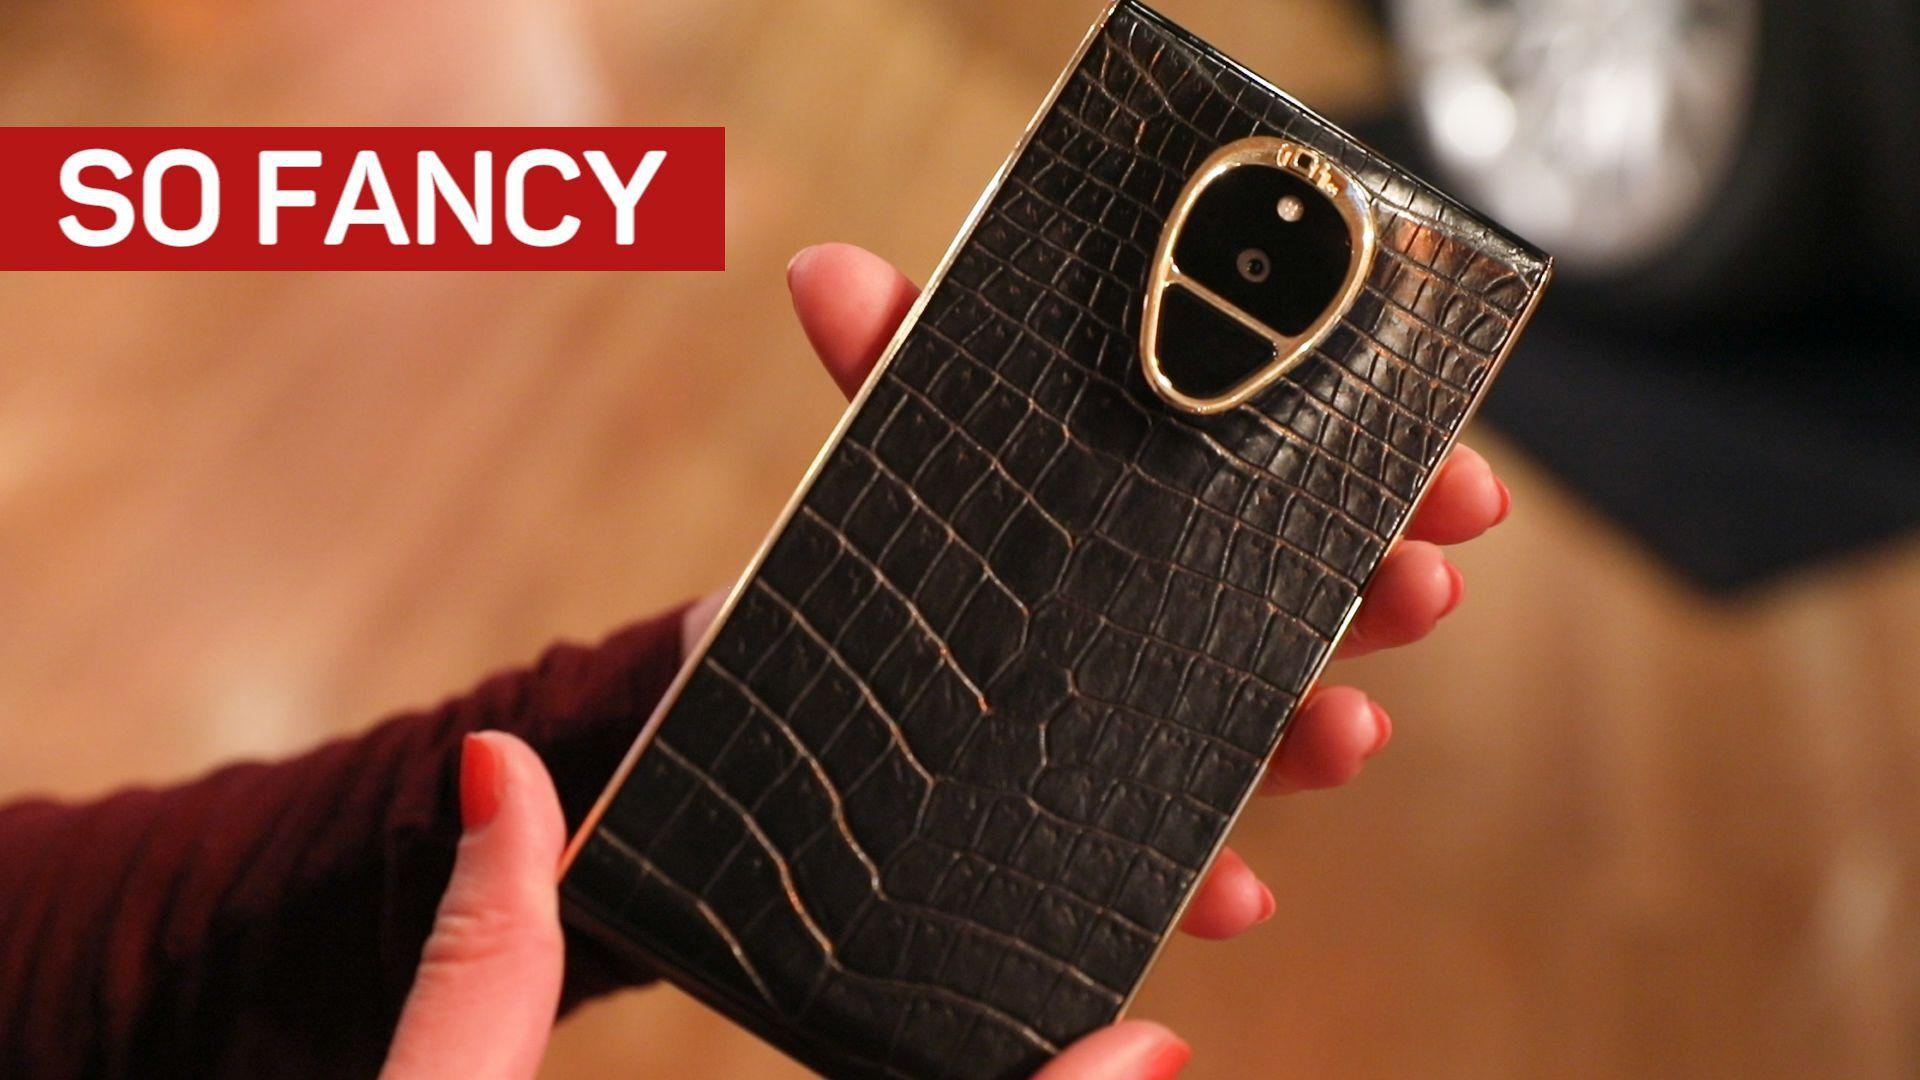 Rich people are paying $15,000 for a phone